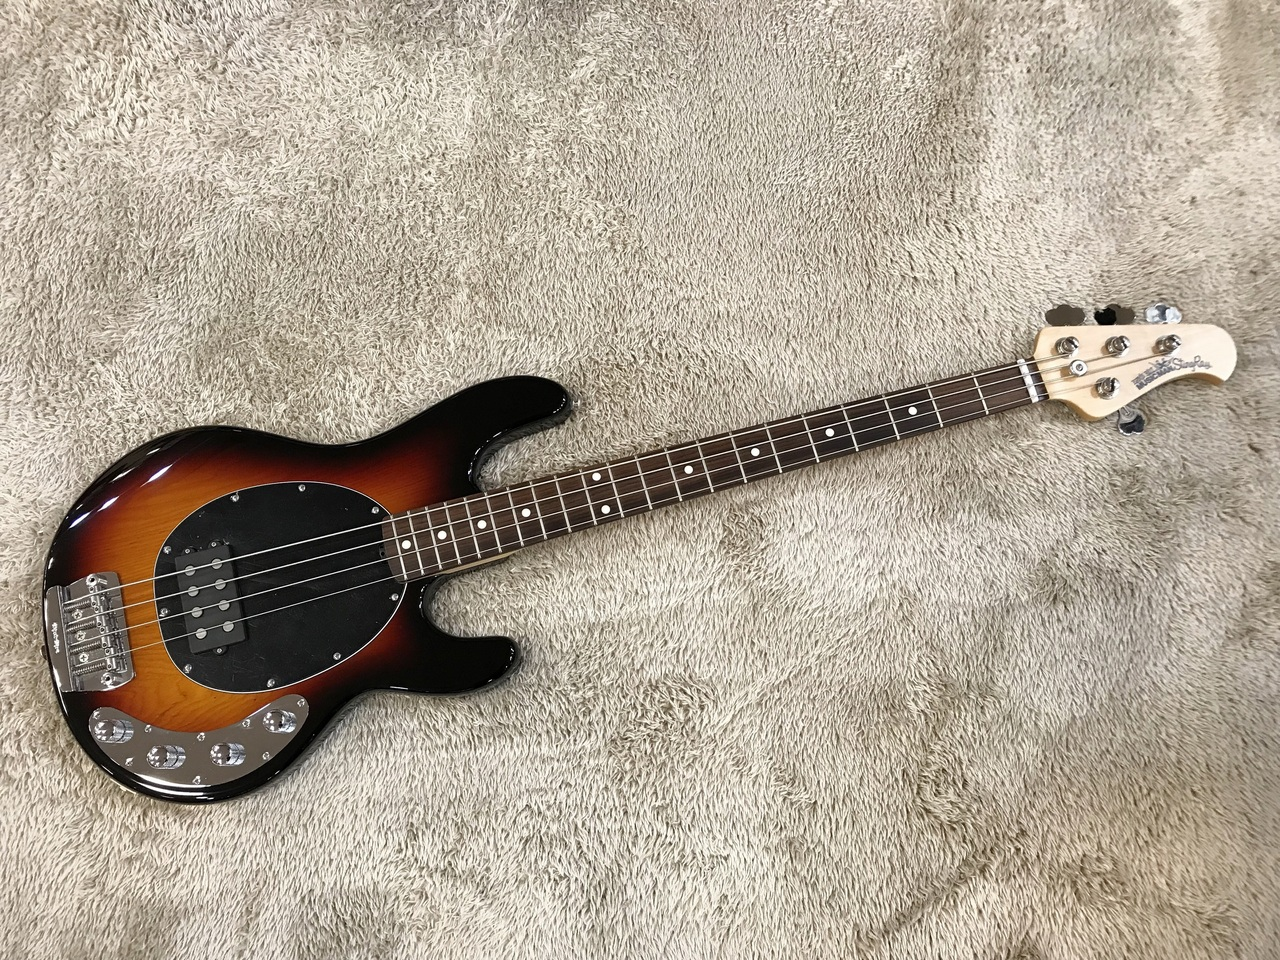 MUSIC MAN StingRay 4 1H Vintage Sunburst / Rosewood Outlet Specials]